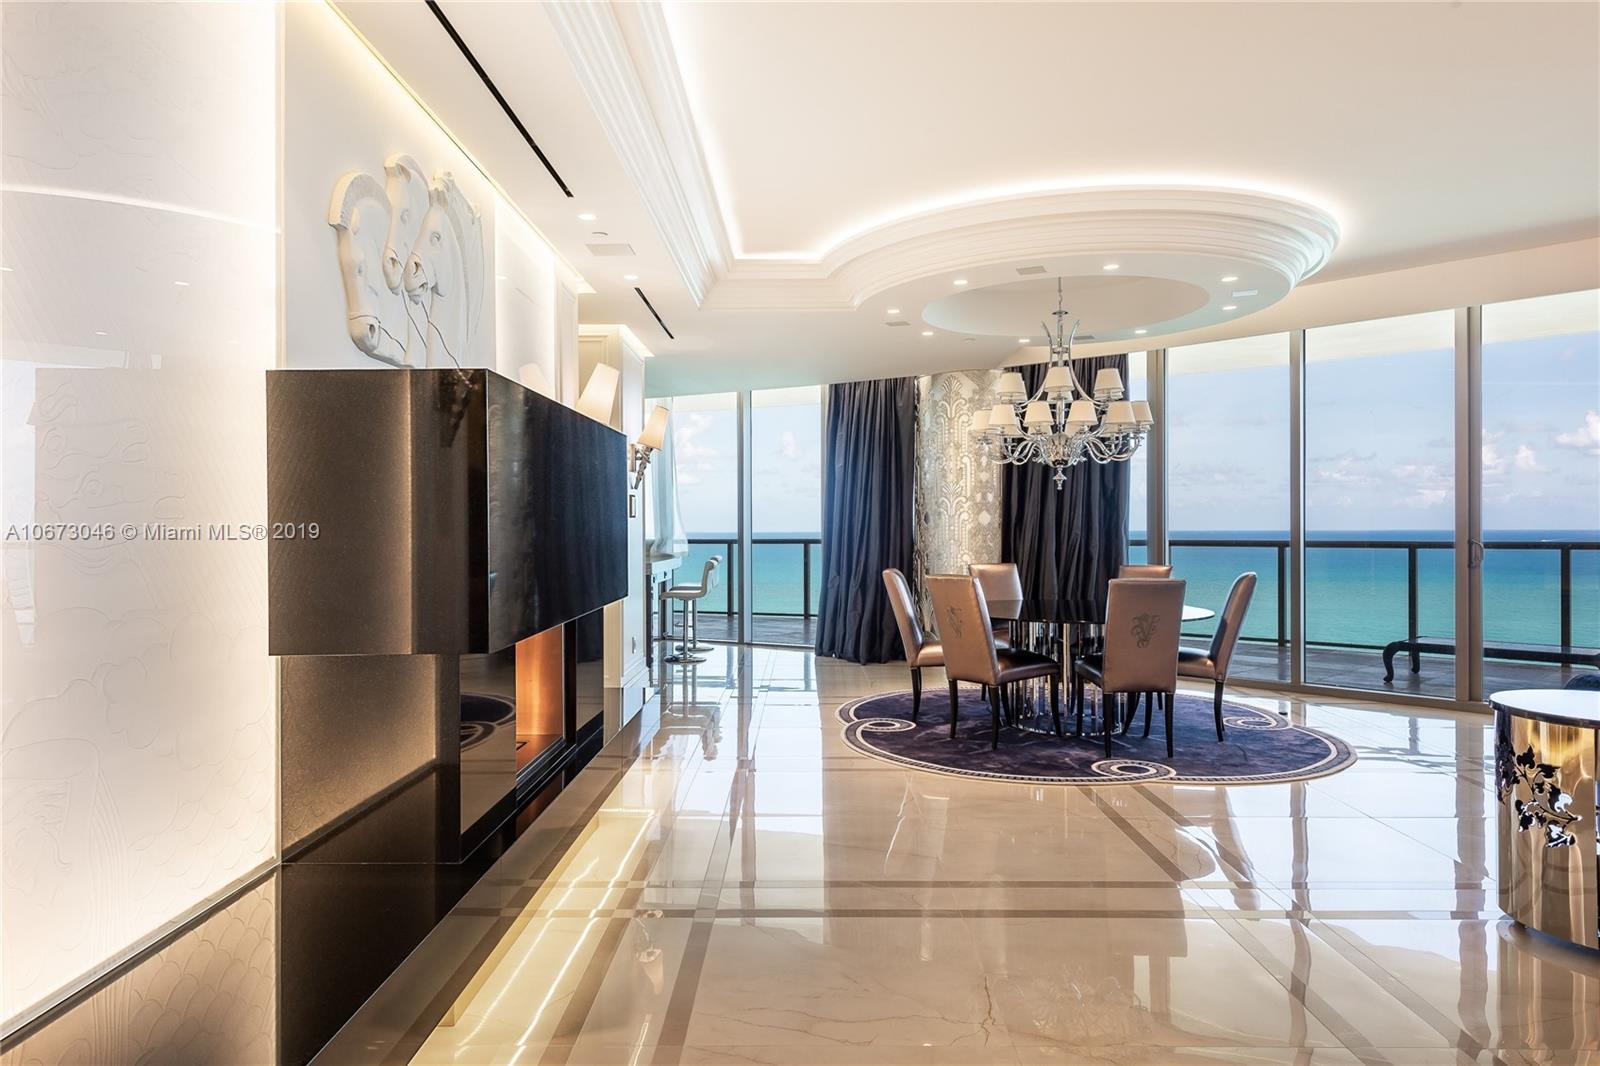 Do not miss the opportunity to own this rare 3/3.5 unit in the famous St. Regis of Bal Harbour. Designed with impeccable taste and style luxury condo offers spacious interior living area, marble floors, ultra sophisticated kitchen and amazing ocean front view. Fully automated smart home system. Residents enjoy VIP access to all St. Regis hotel amenities, world class spa/gym, cabanas, 24 hour concierge, valet parking, housekeeping, restaurants, room service, chef and white glove butler services.